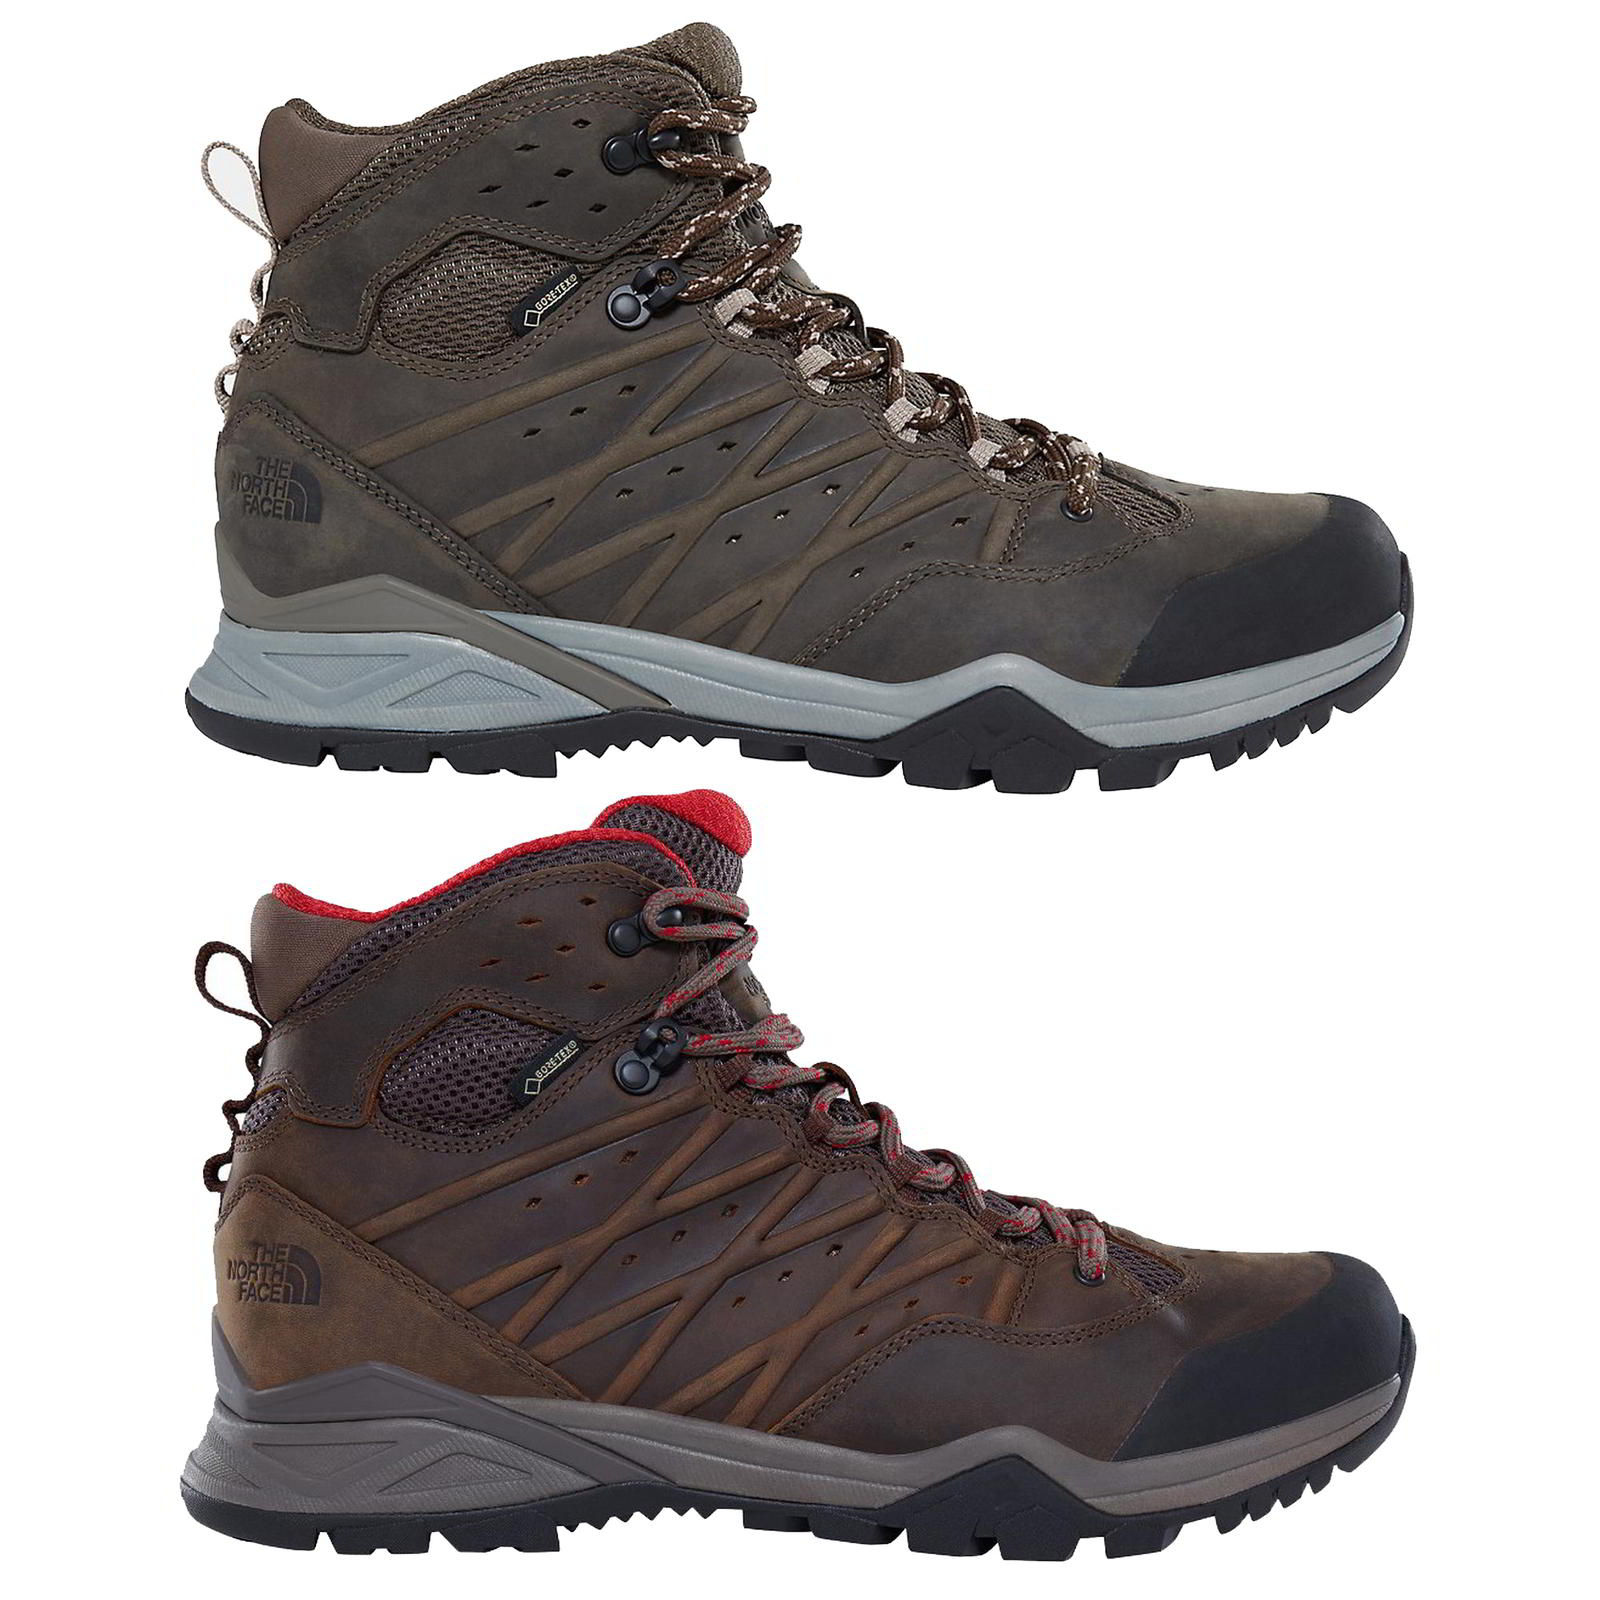 df2e909033 North Face Hedgehog Hike II Mid GTX Mens Waterproof Gortex Walking ...